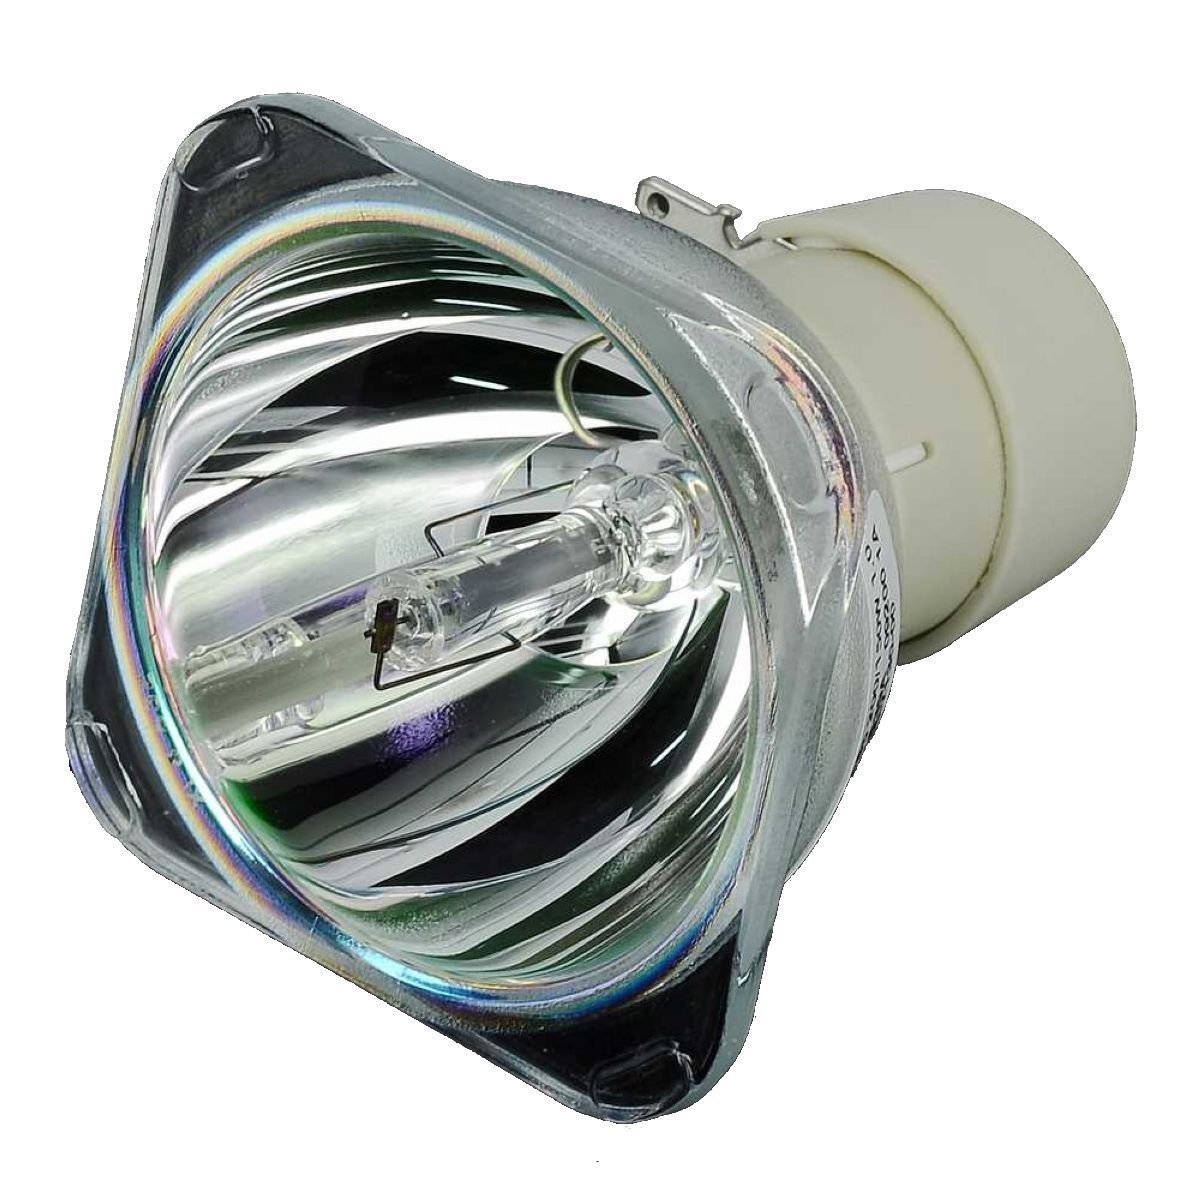 100% Original Bare Bulb 5J.J3S05.001 UHP200/150W Lamp for BENQ MX511 MS510 MW512 Projector Lamp Bulb without housing